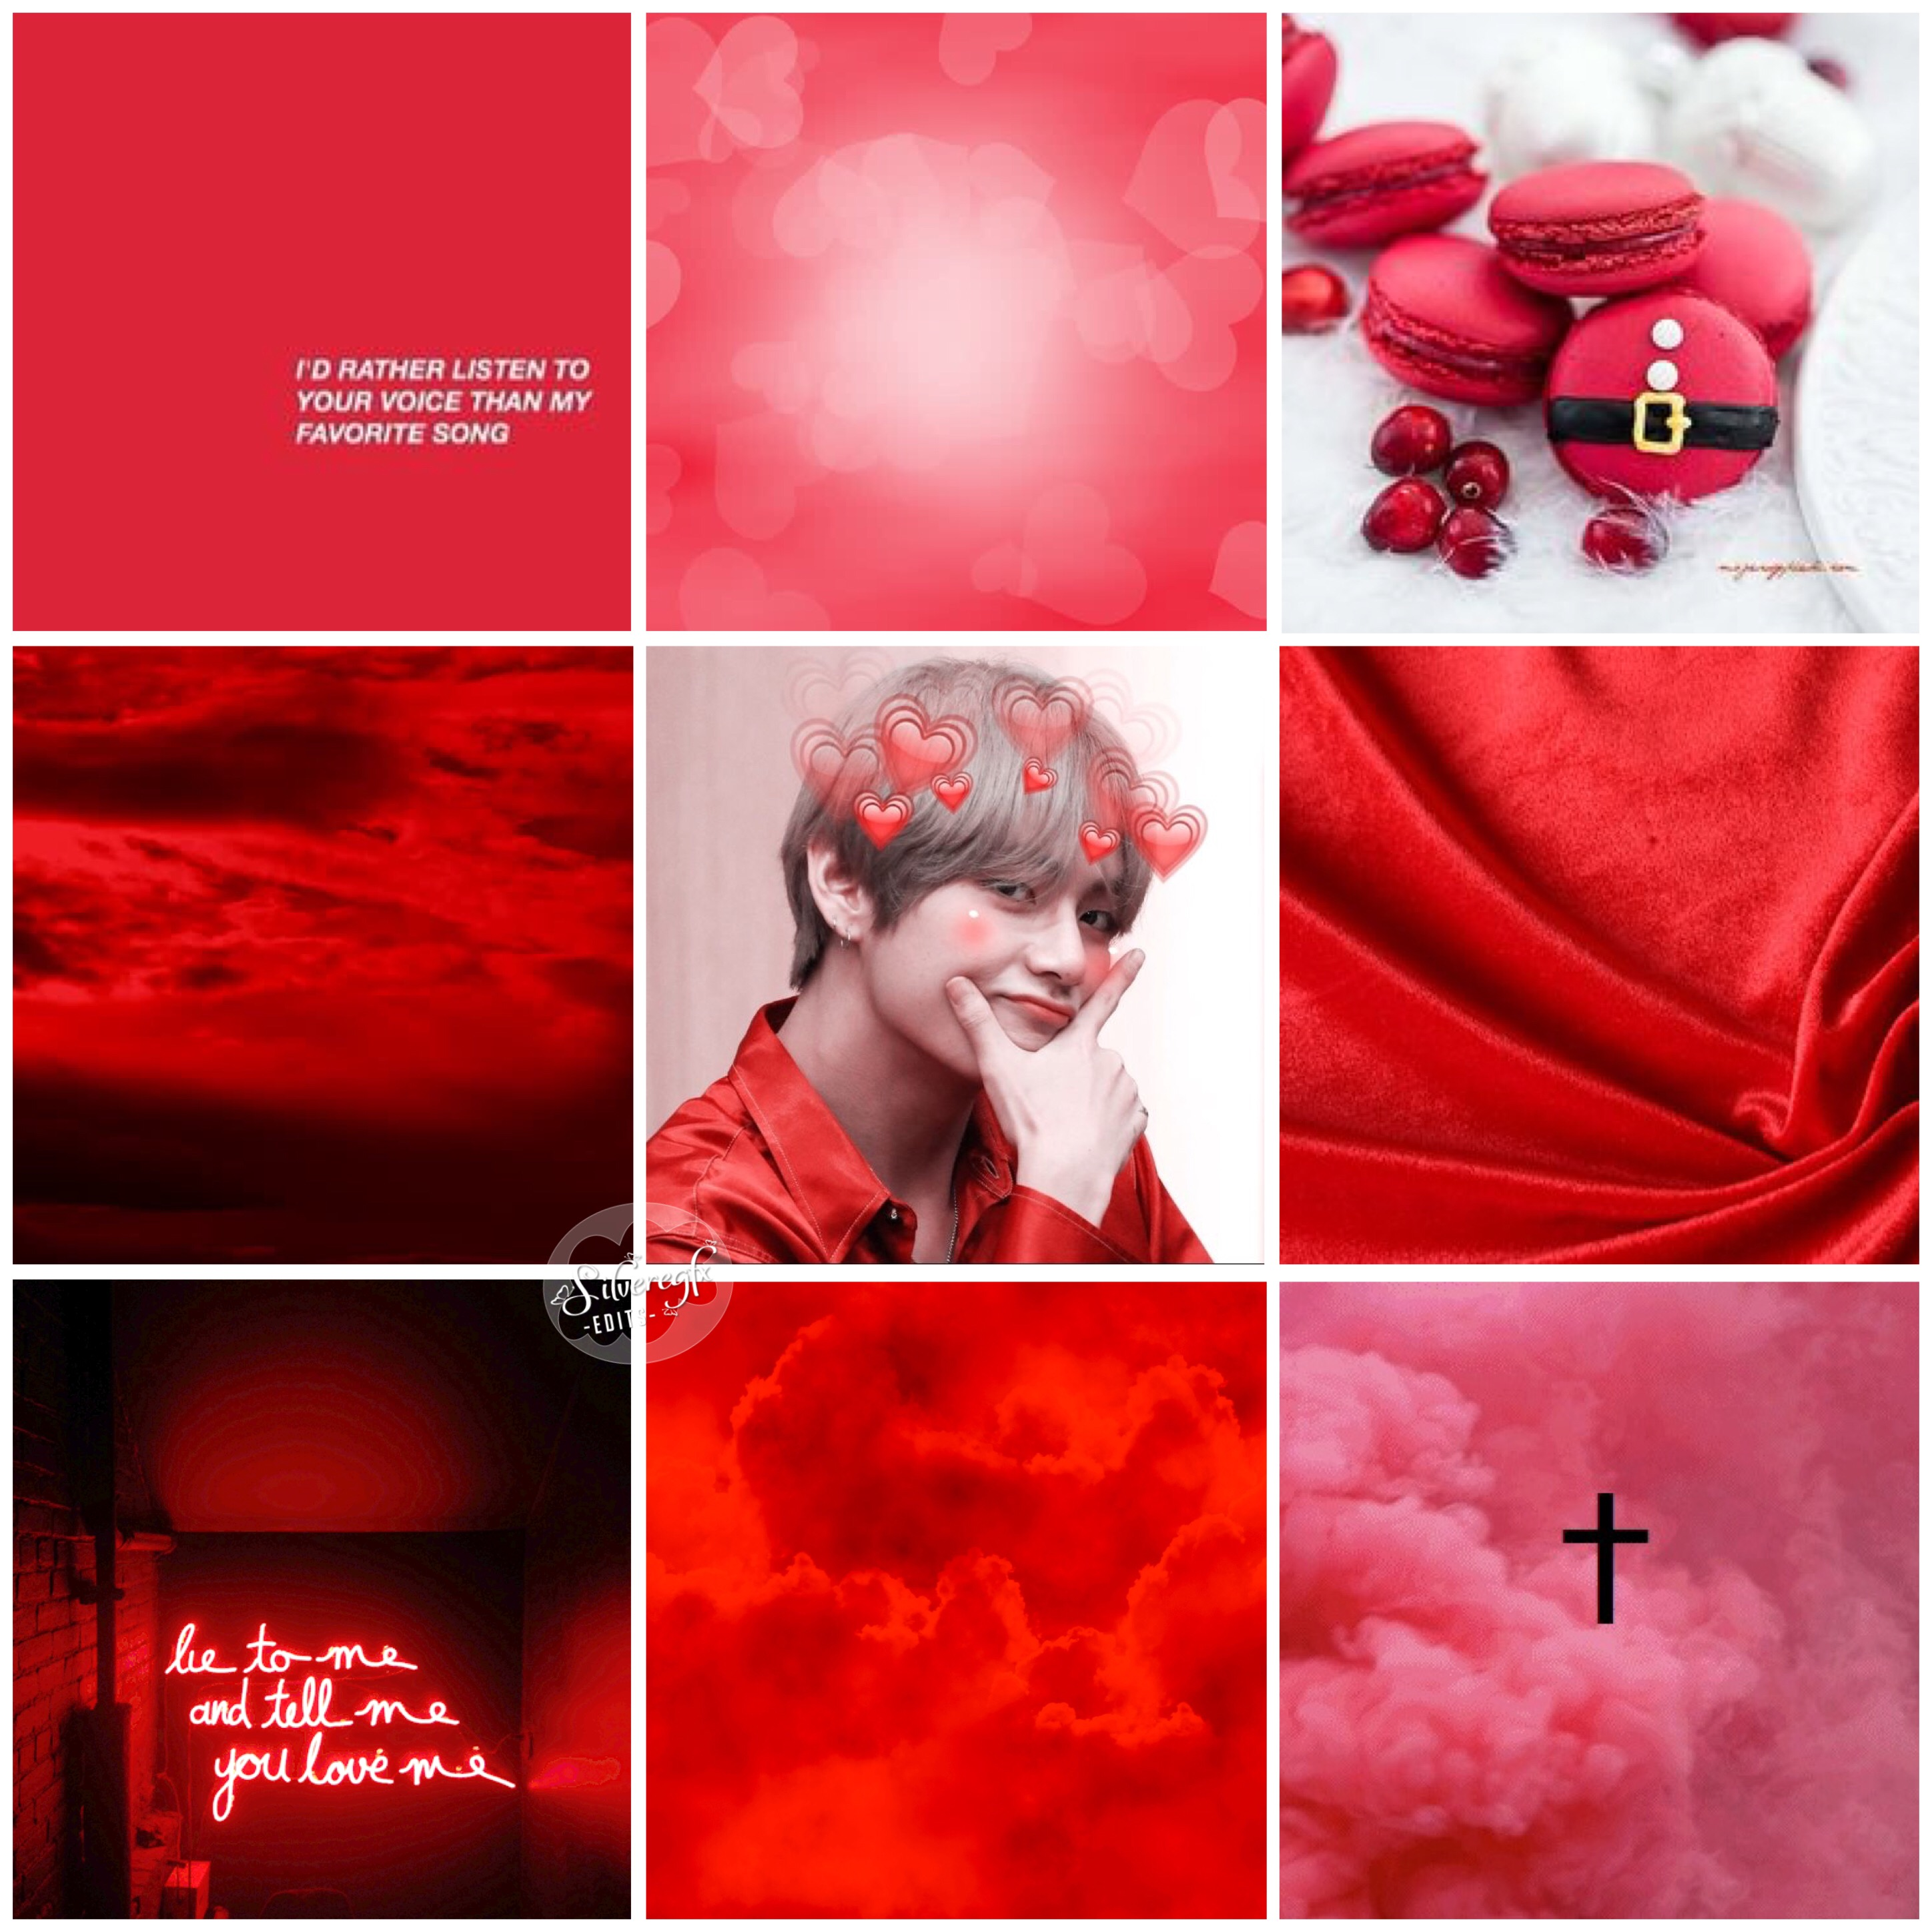 Pastel Red V Aesthetic Chimmy Chimmycloudcontest